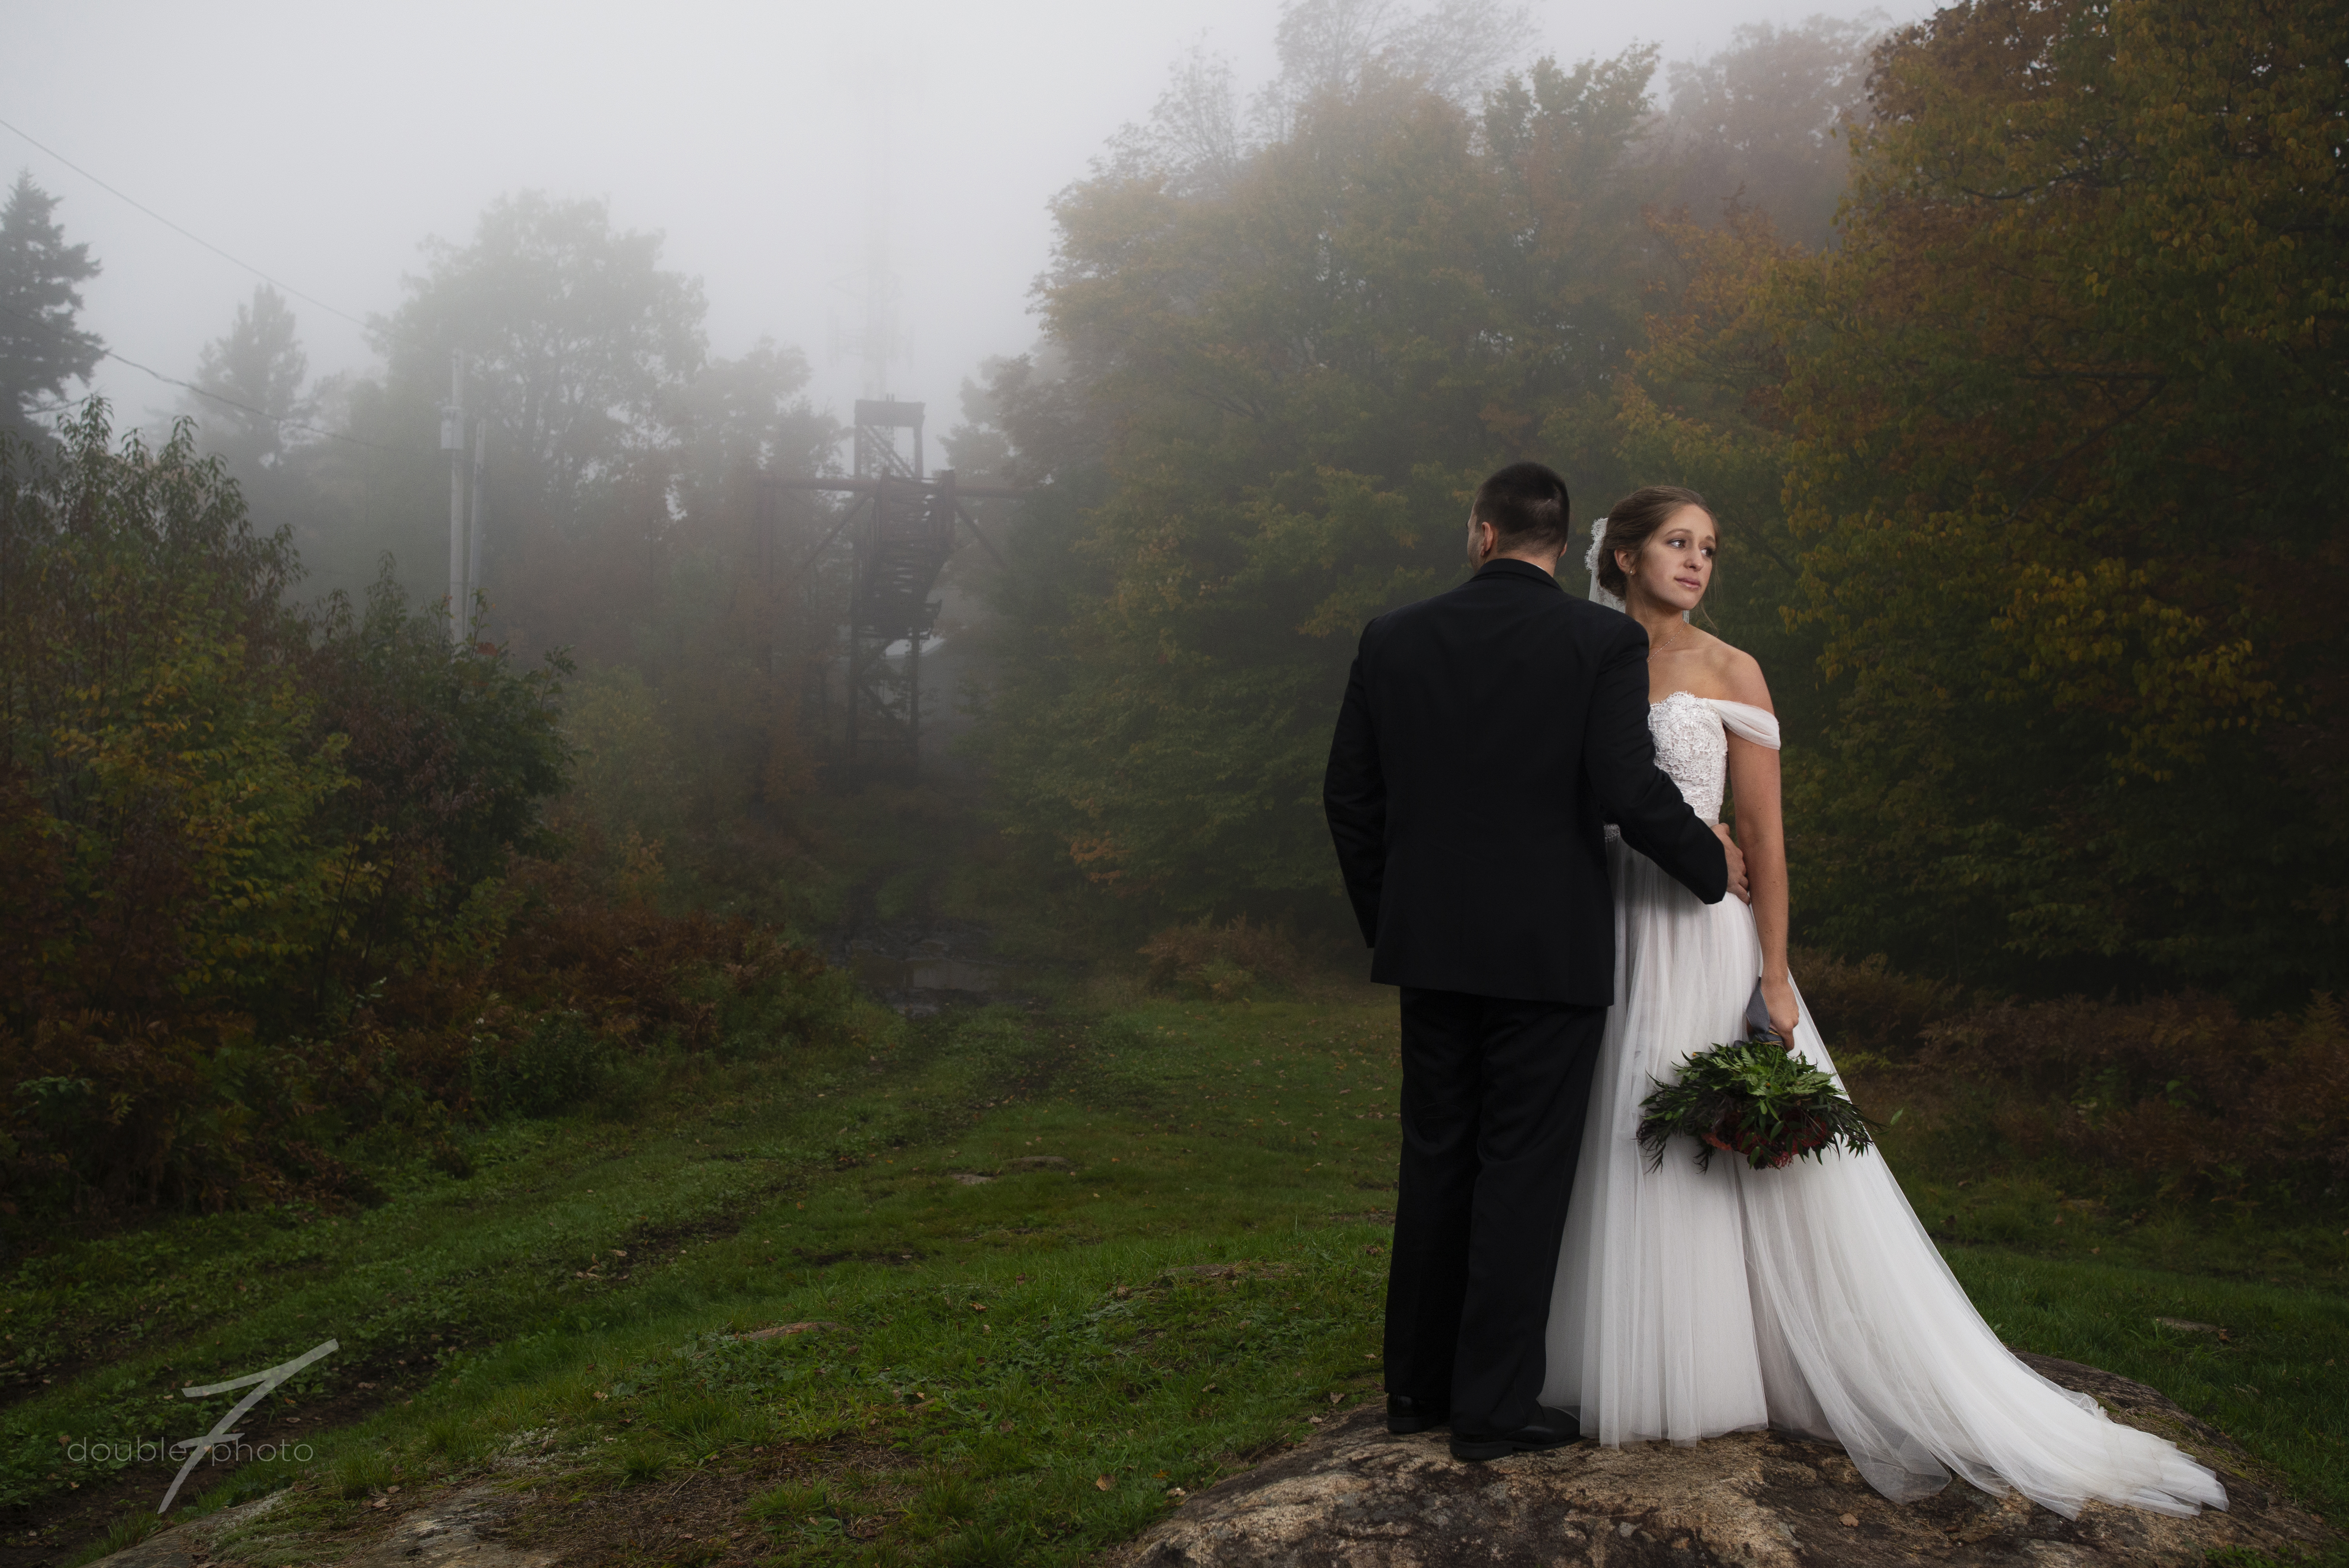 Liz and Matt's Adirondack Wedding